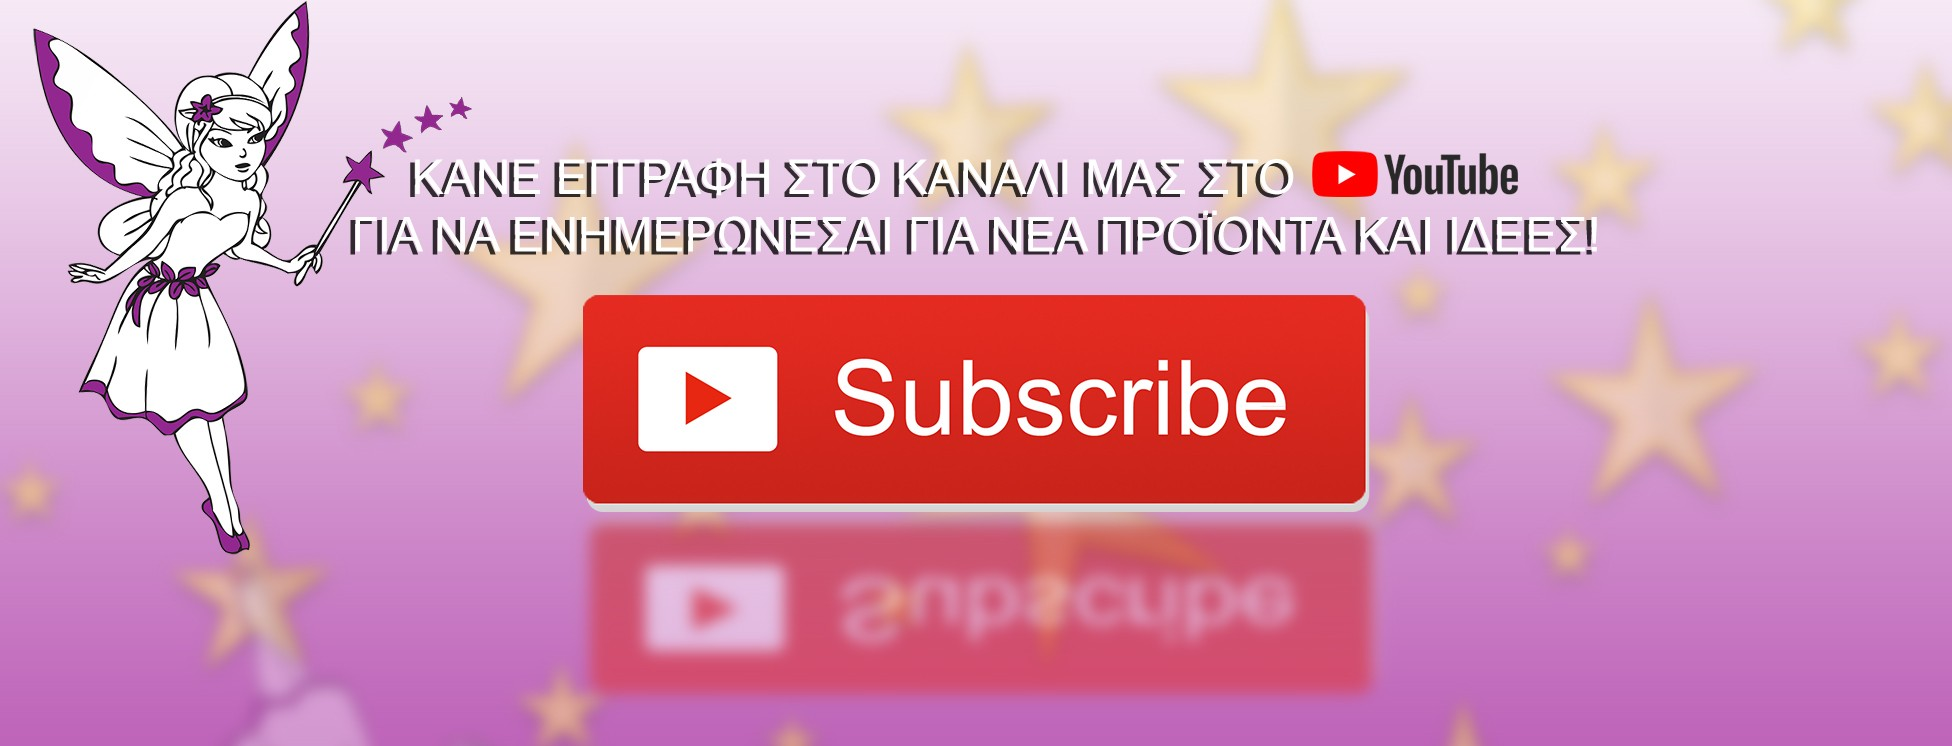 STOLIZO.gr Youtube